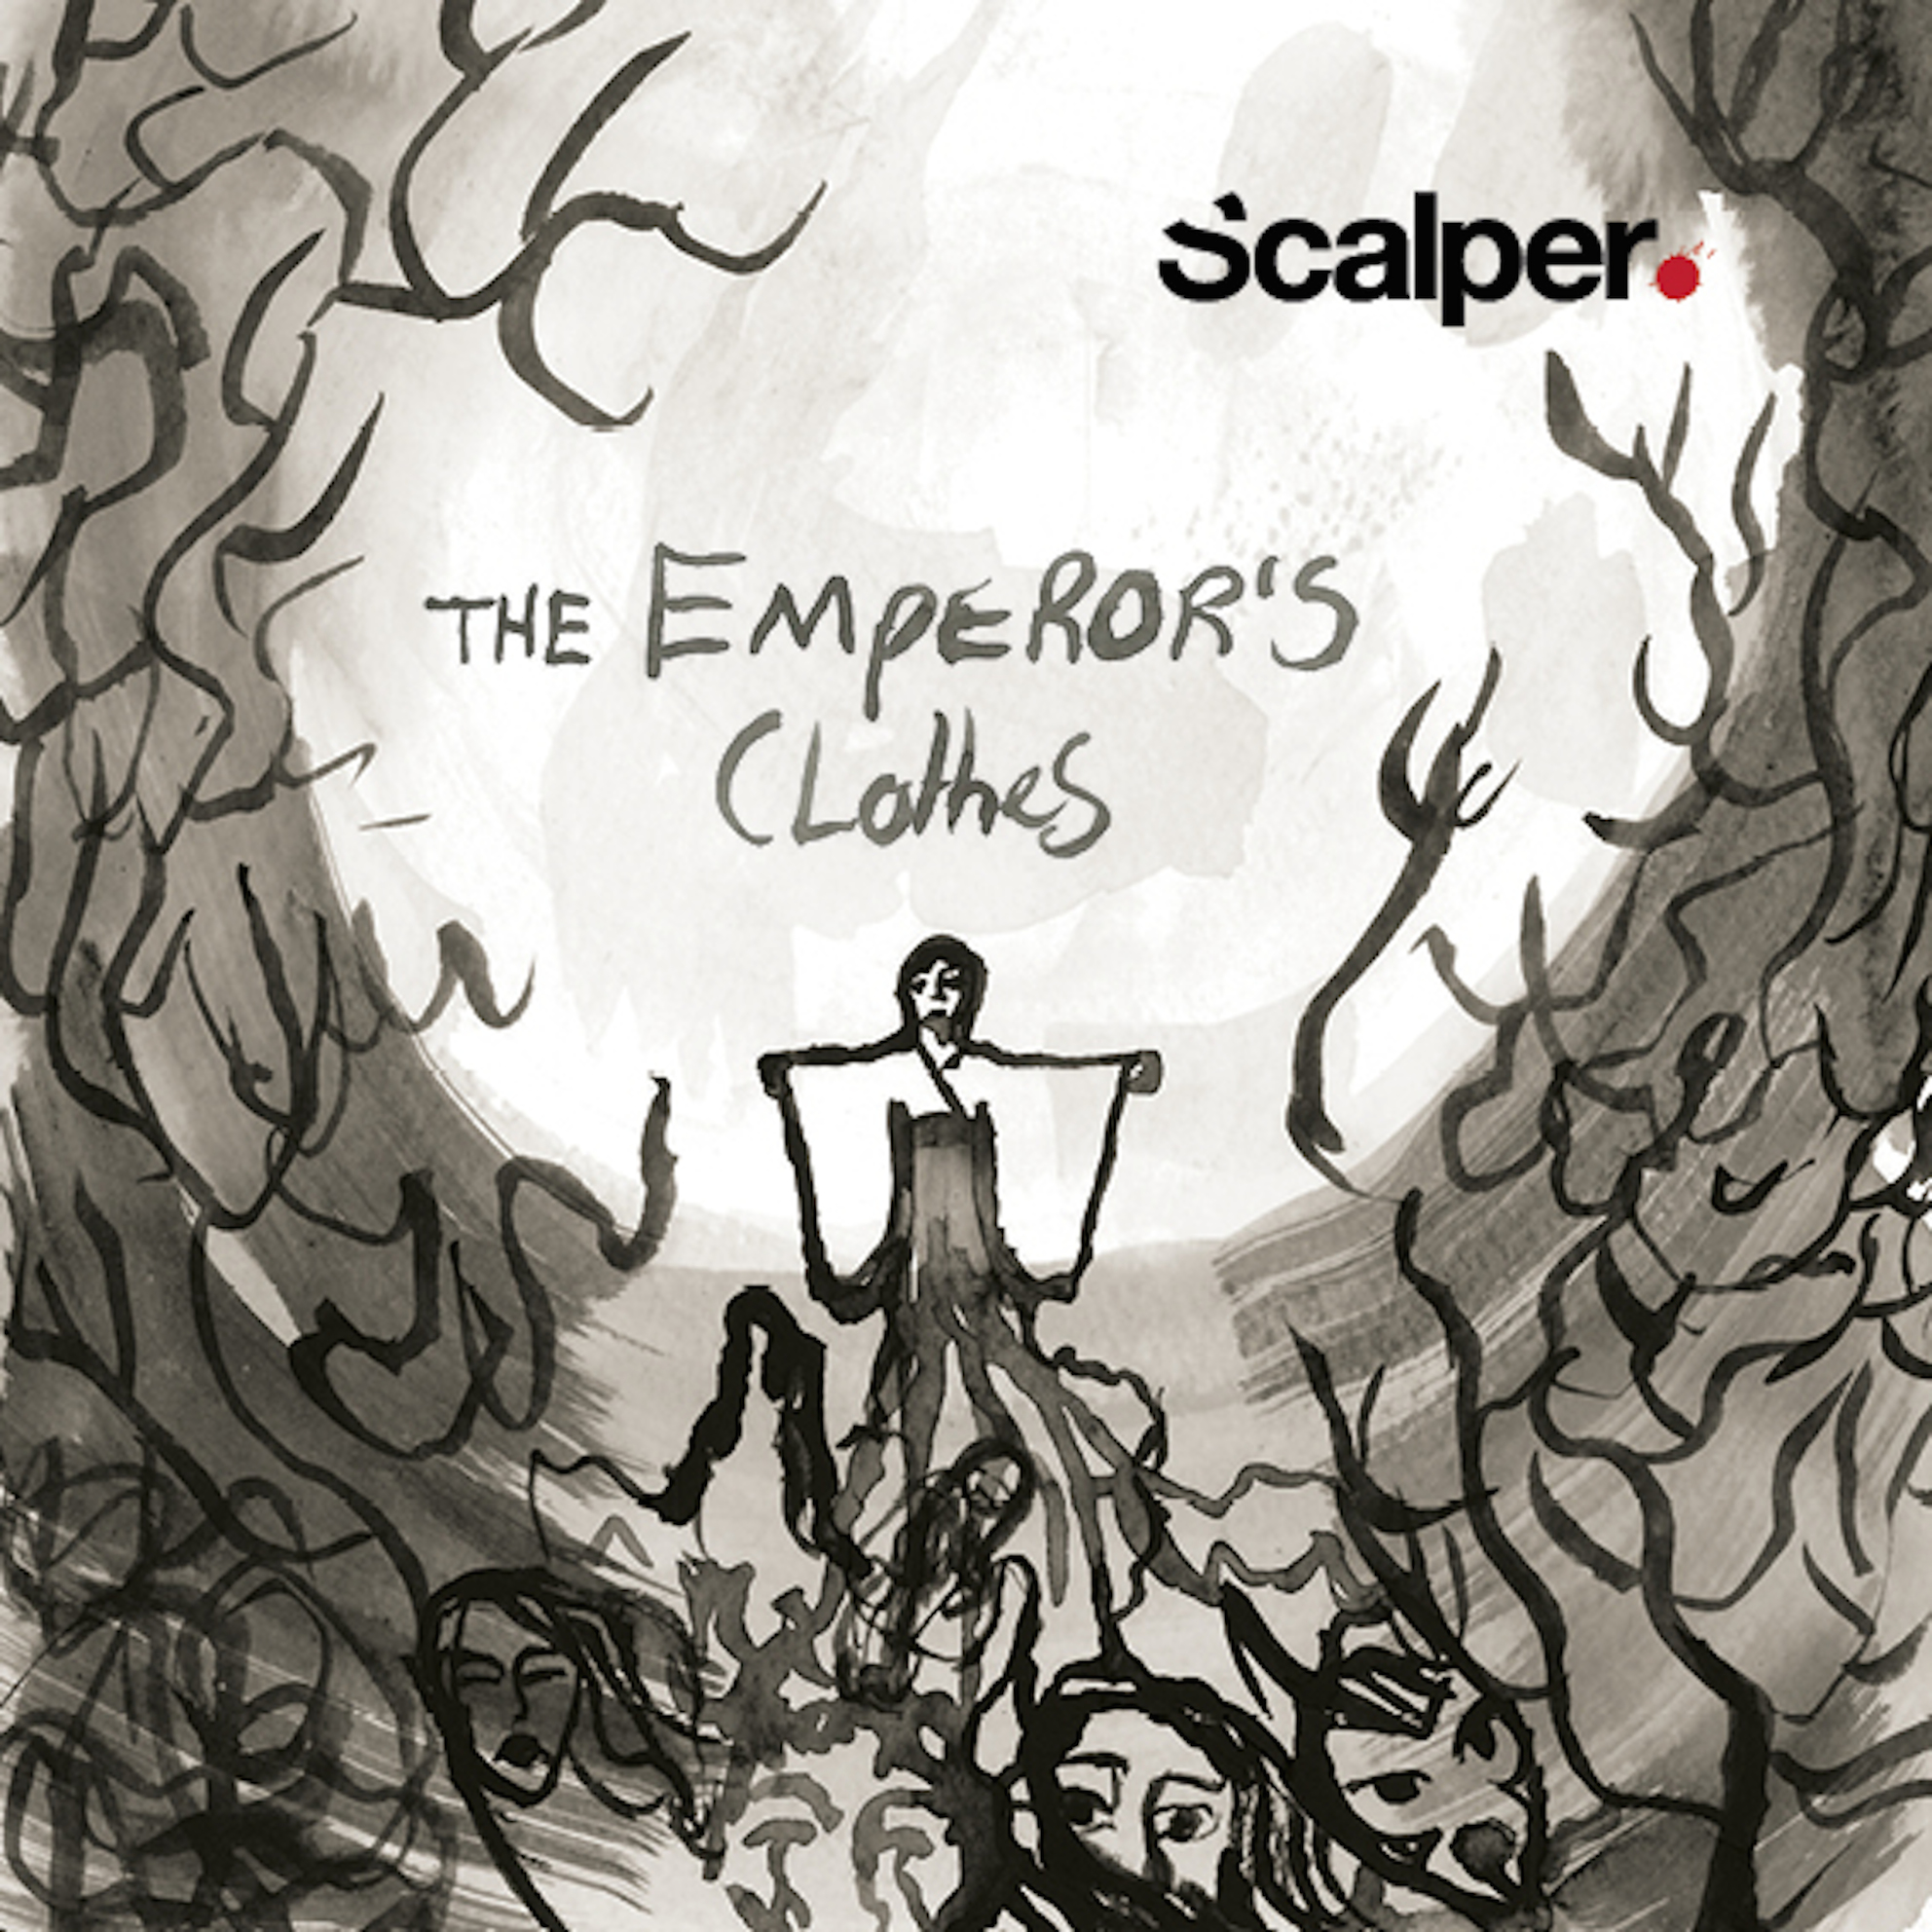 Scalper_The Emperor's Clothes front cover copy 3